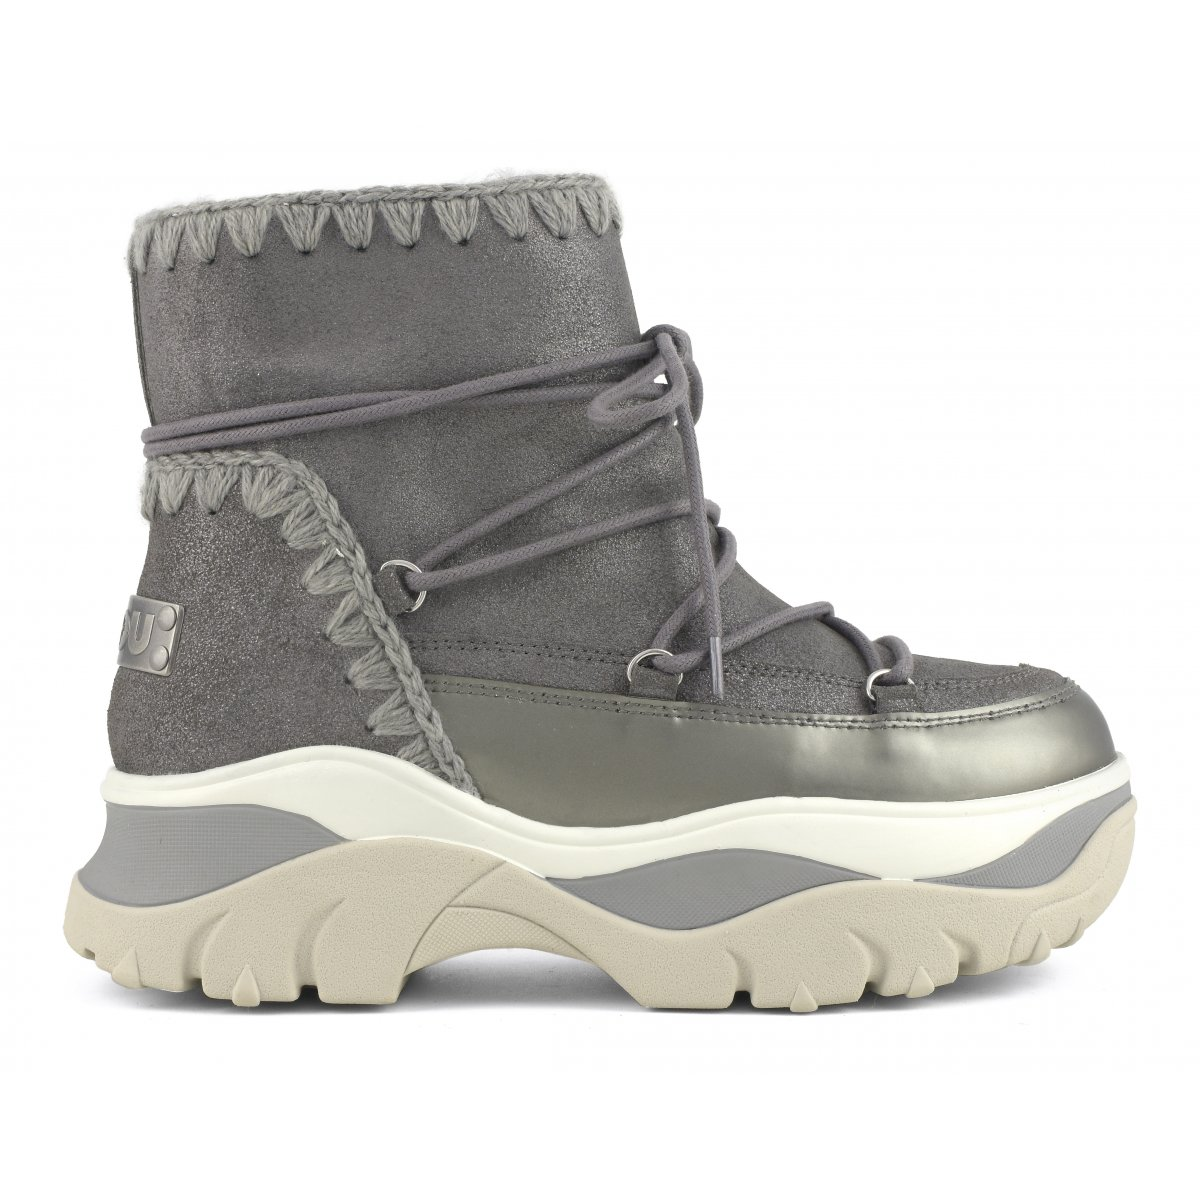 chunky sneaker boot - sneakers mou